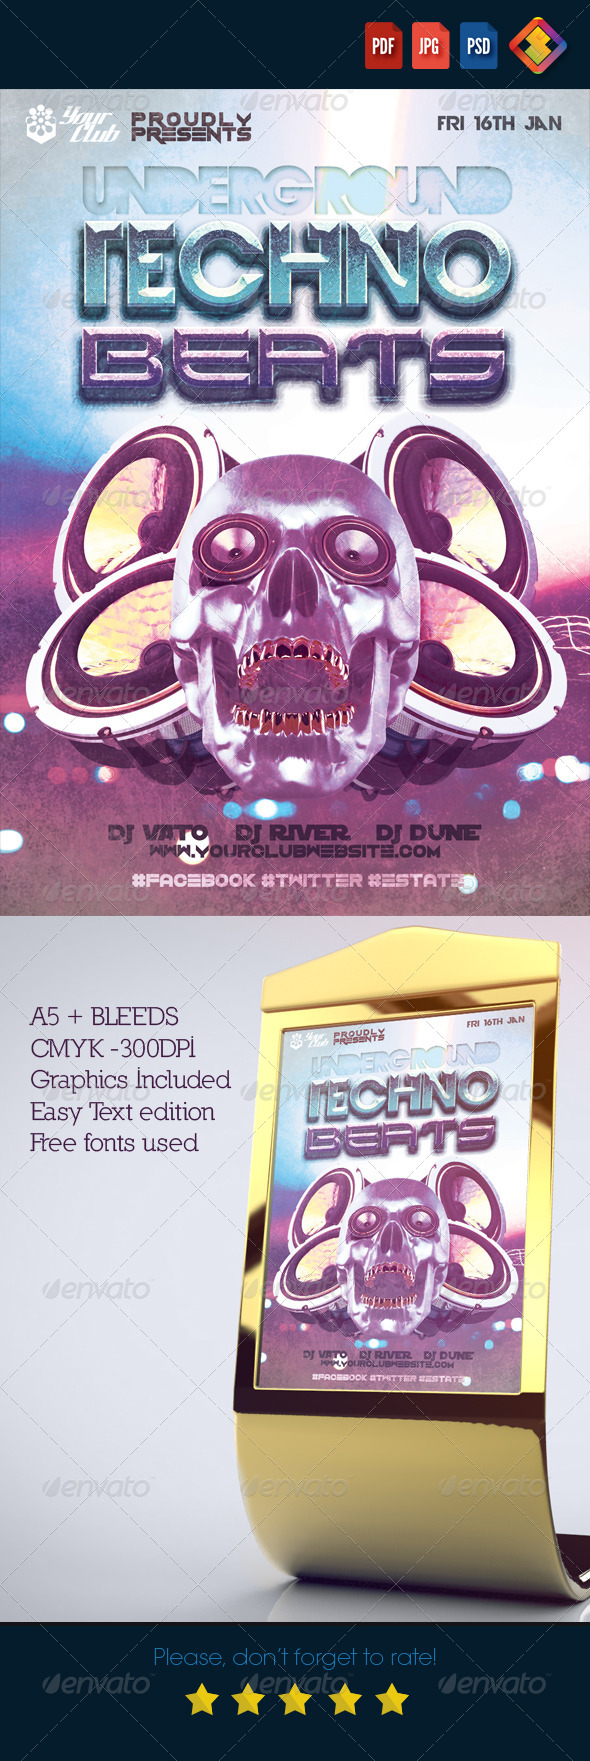 GraphicRiver Underground Techno Beats A5 Flyer 6537257